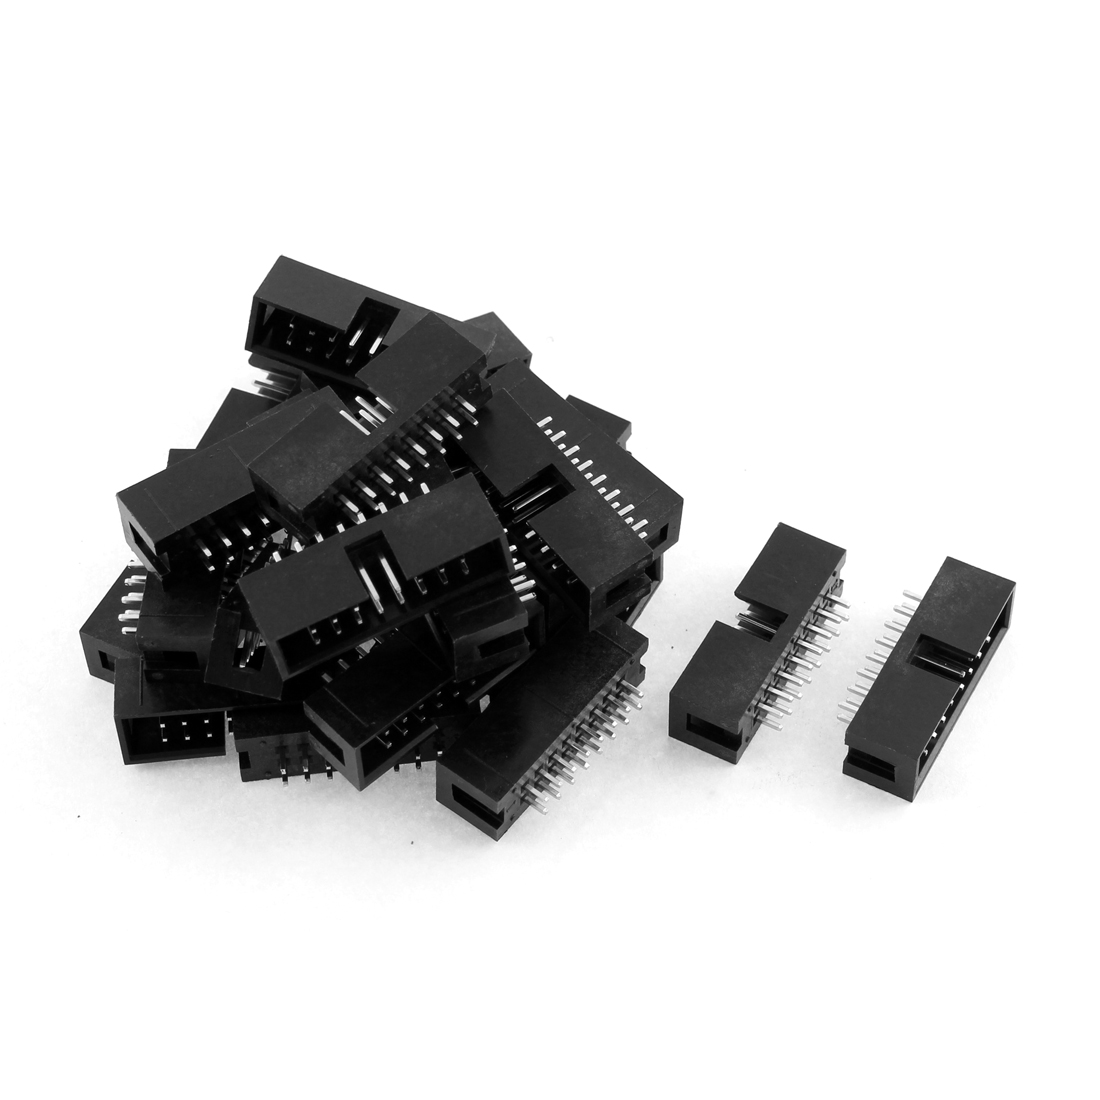 24pcs 2x8 16-Pin 2.54mm Pitch Straight Box Header Connector IDC Male Sockets